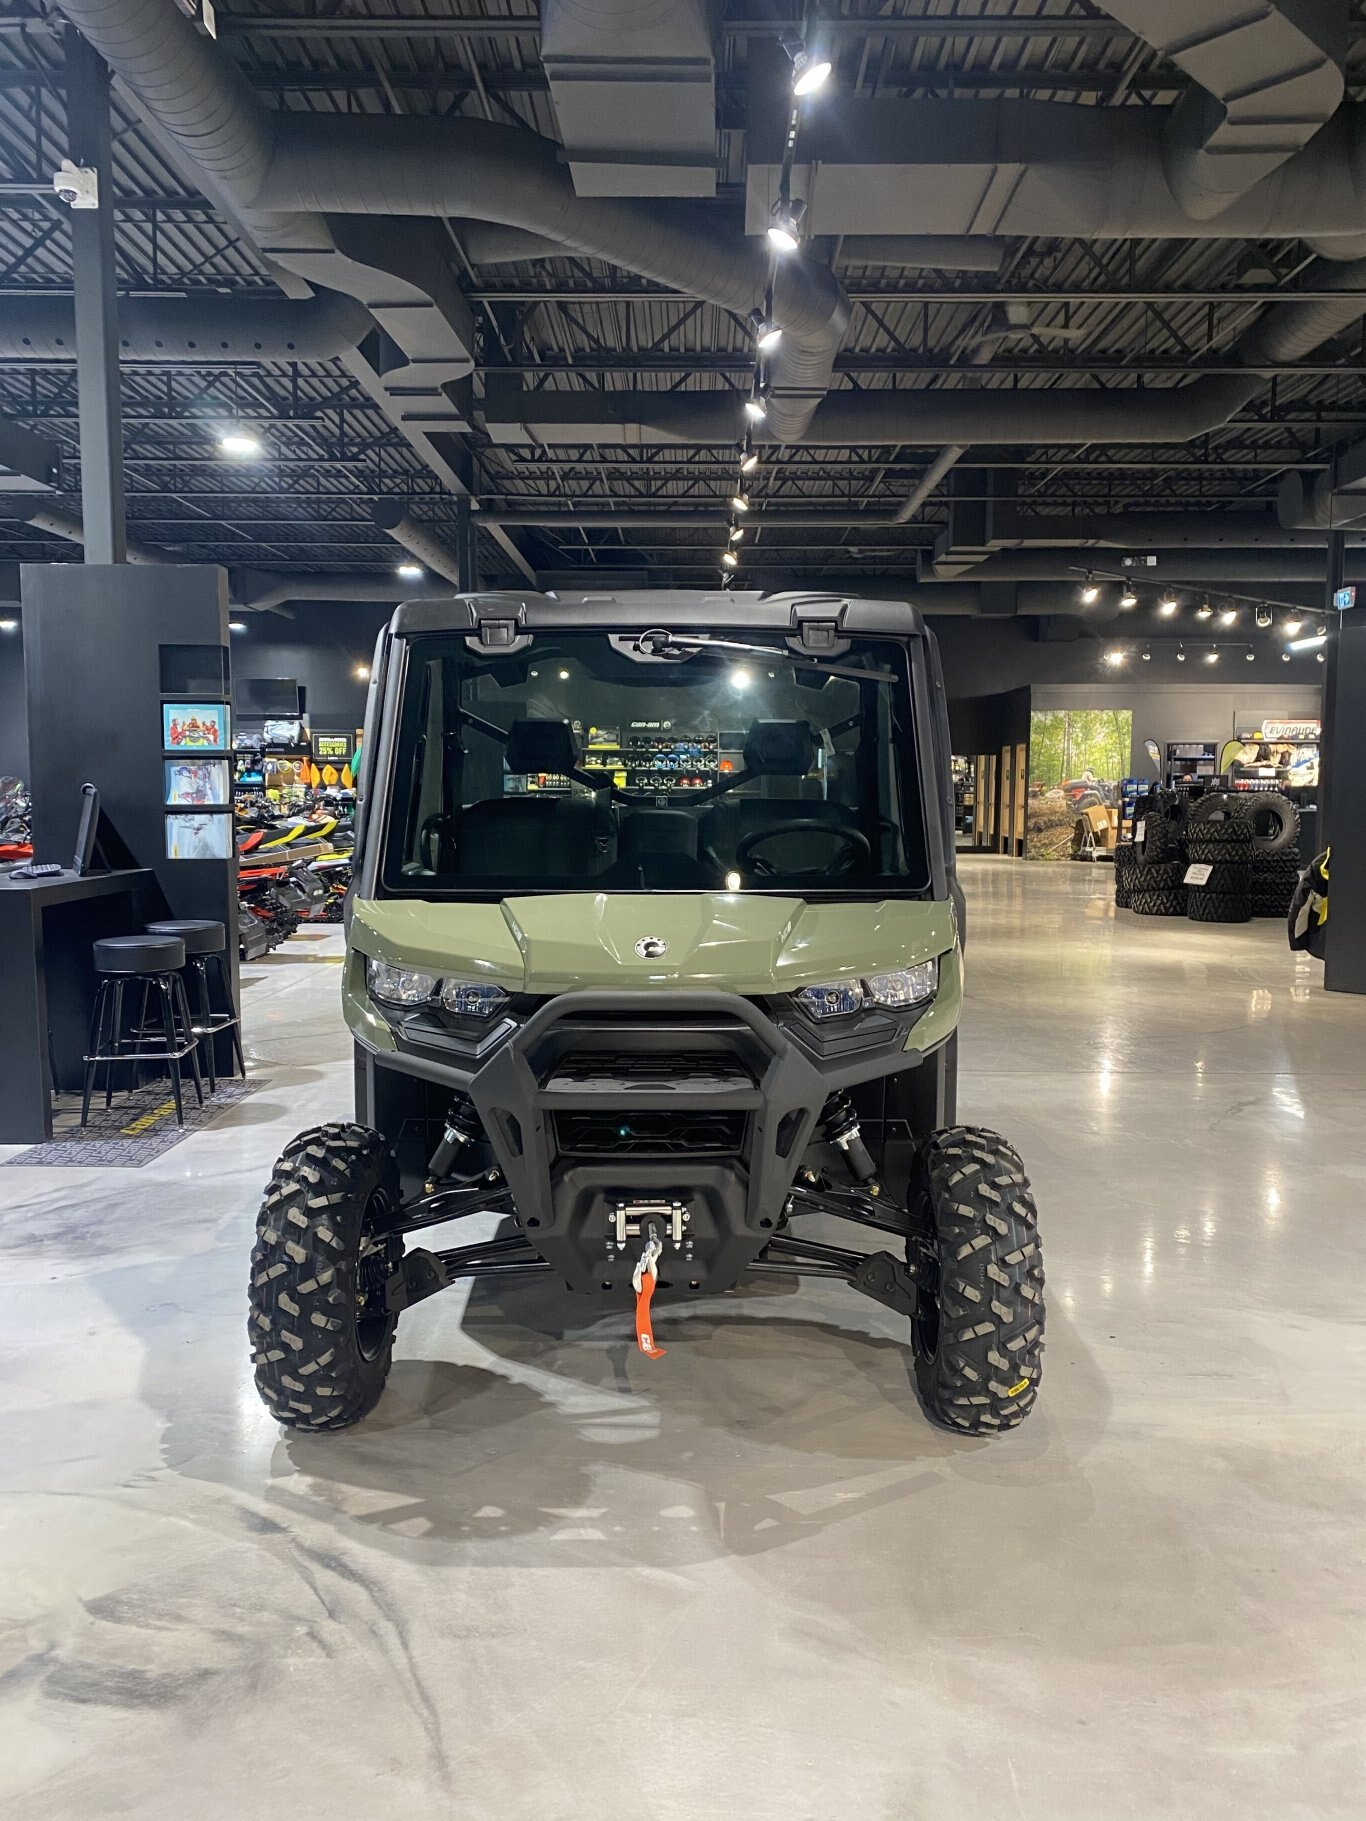 2021 Can-Am Defender DPS Cab HD8 Can am dealer in 647 ...